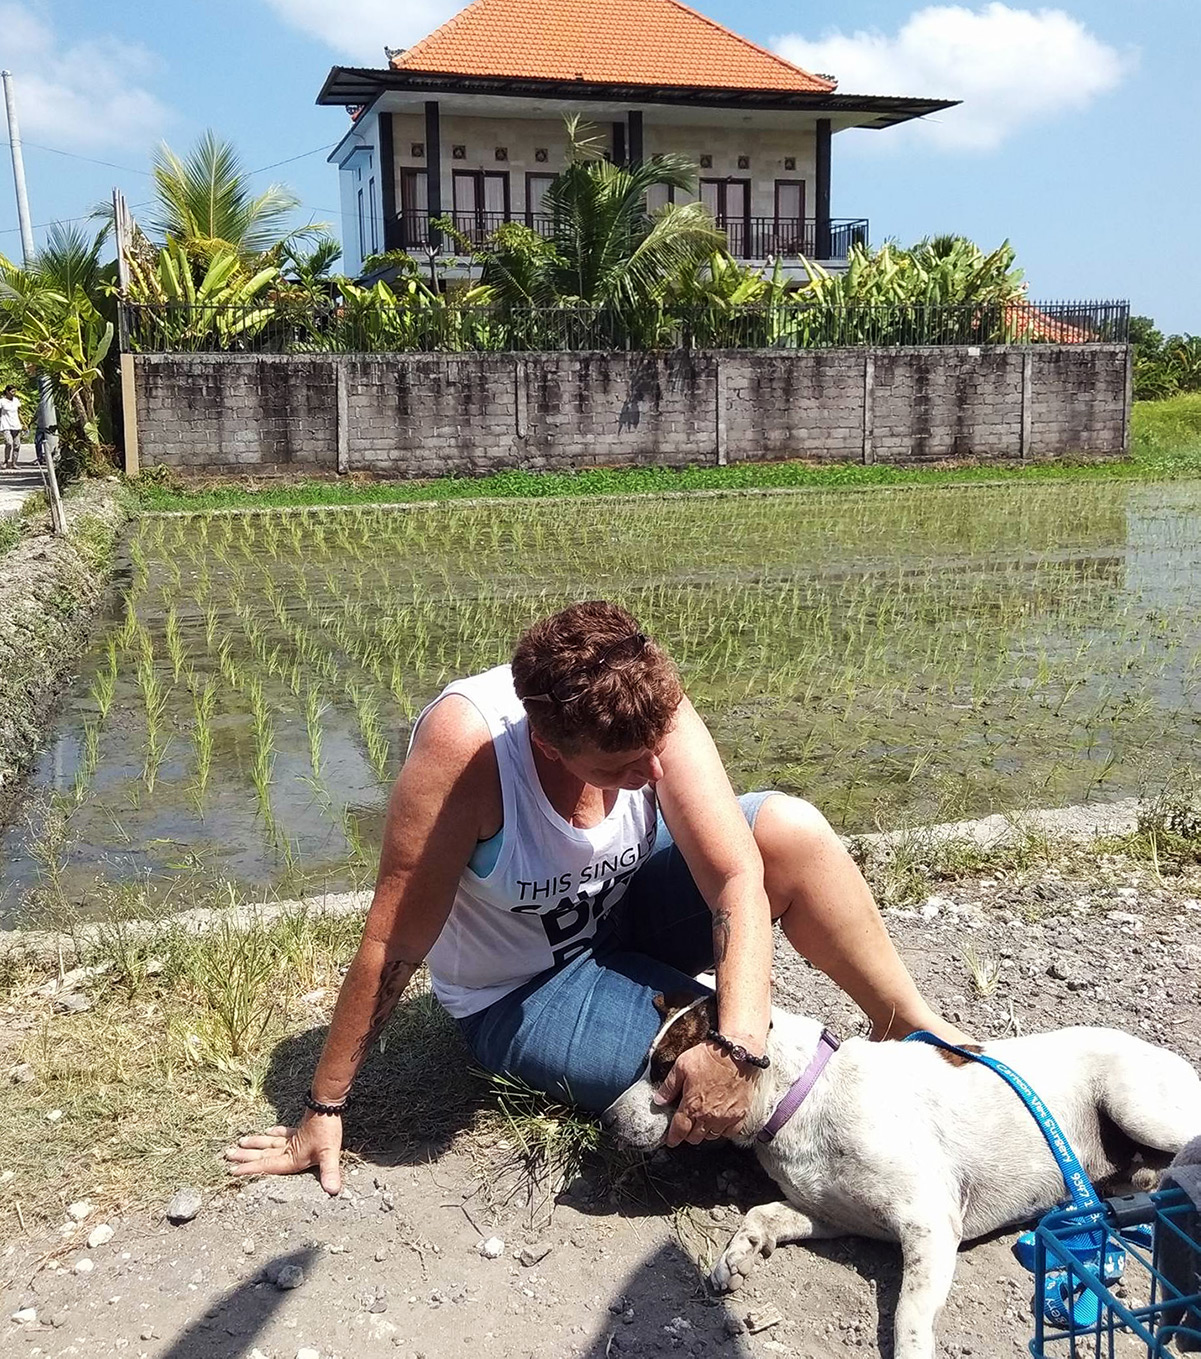 Bali Pet Crusaders Founder